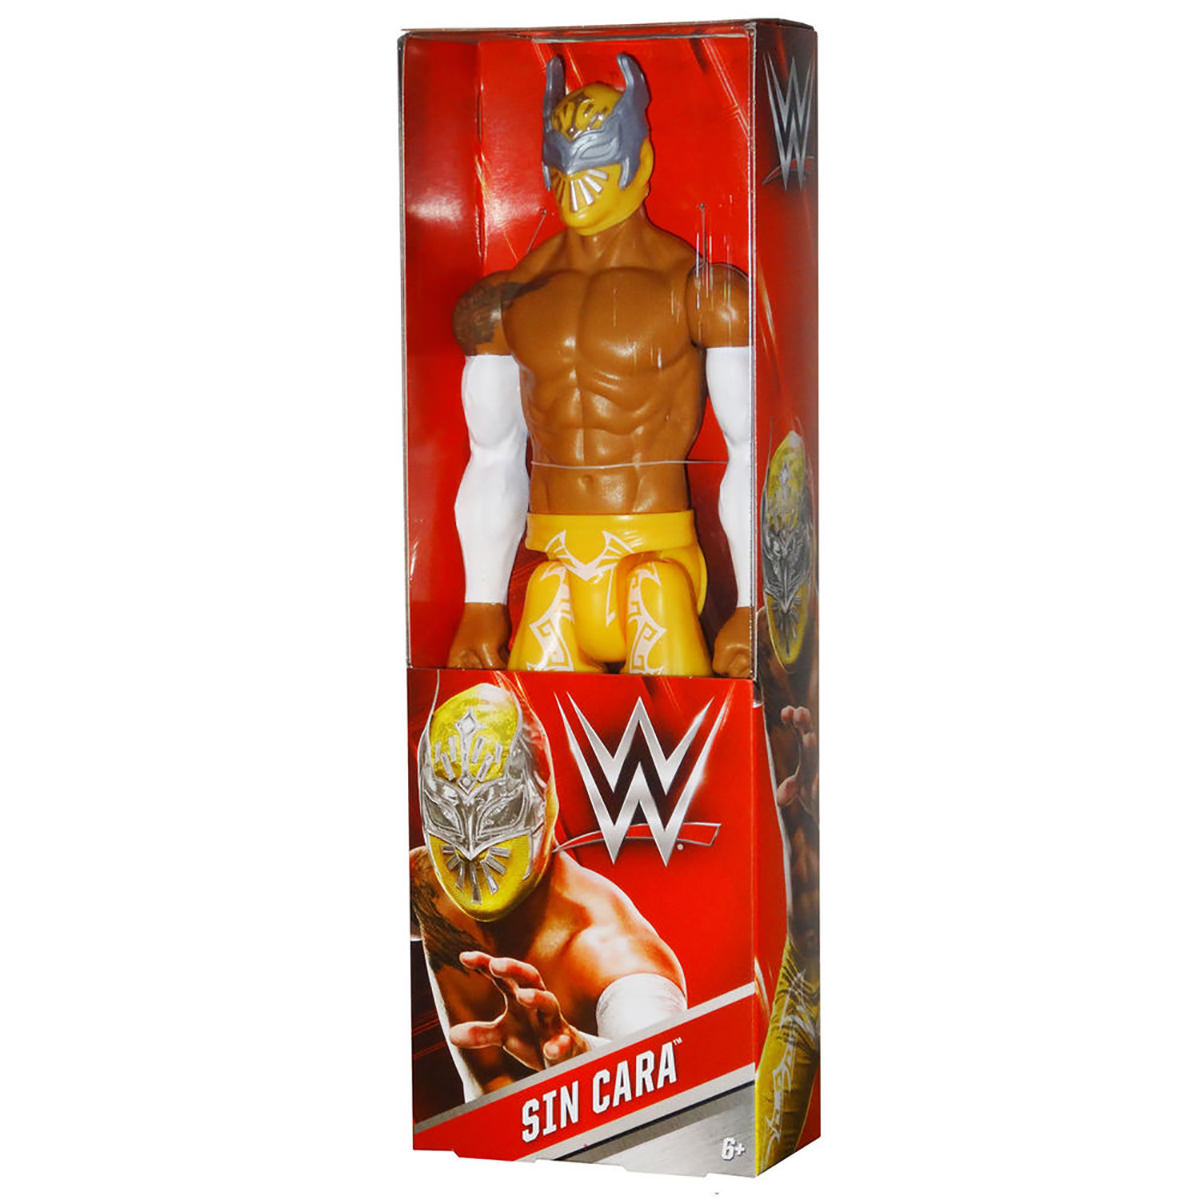 Wwe 12 Quot Figure Sin Cara With Yellow Outfit At Hobby